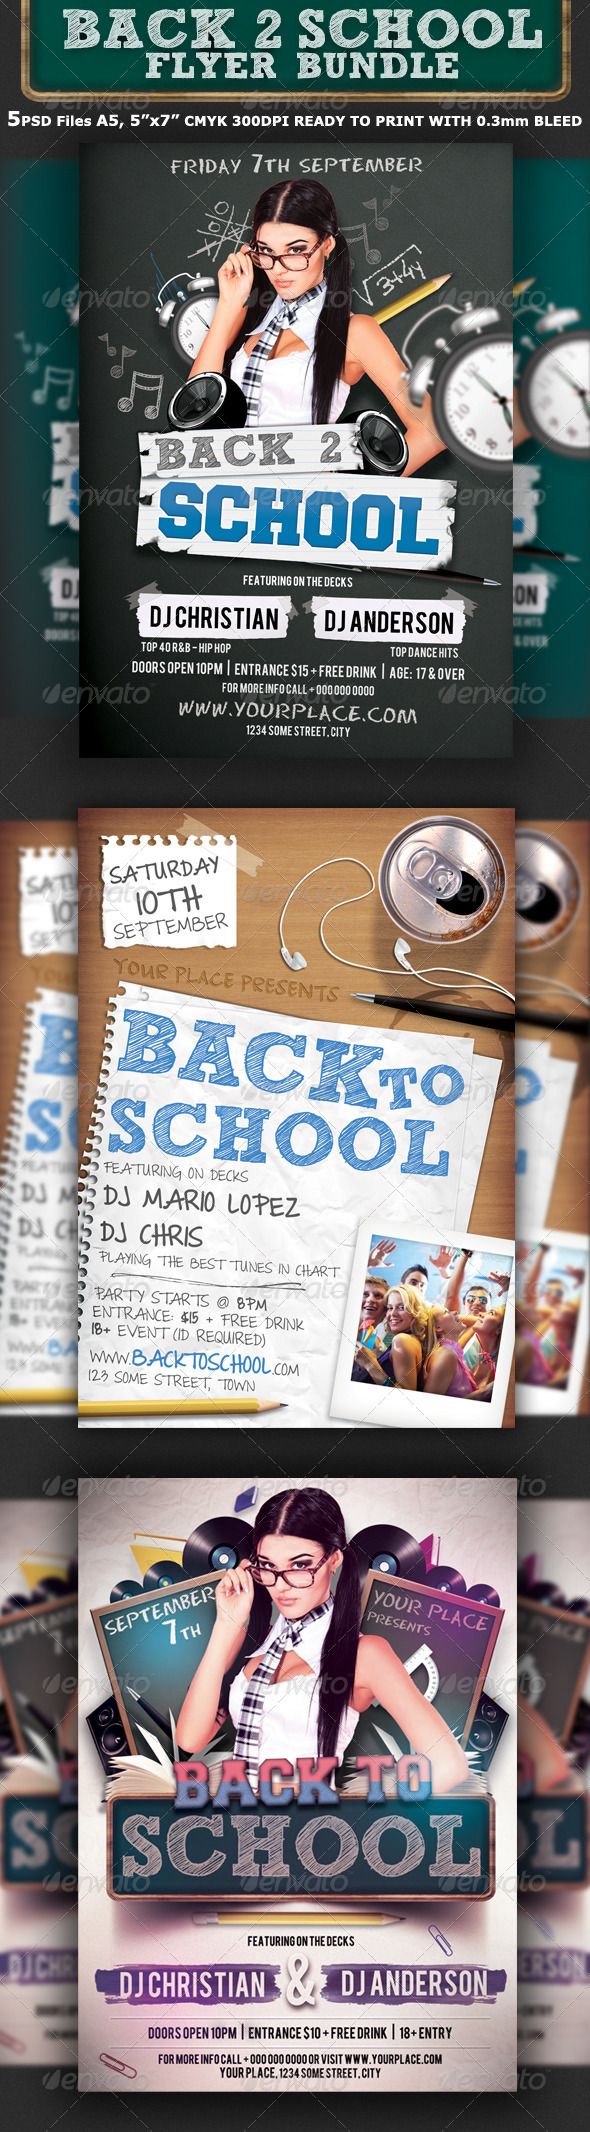 Back To School Party Flyer Bundle 3in1 - Clubs & Parties Events